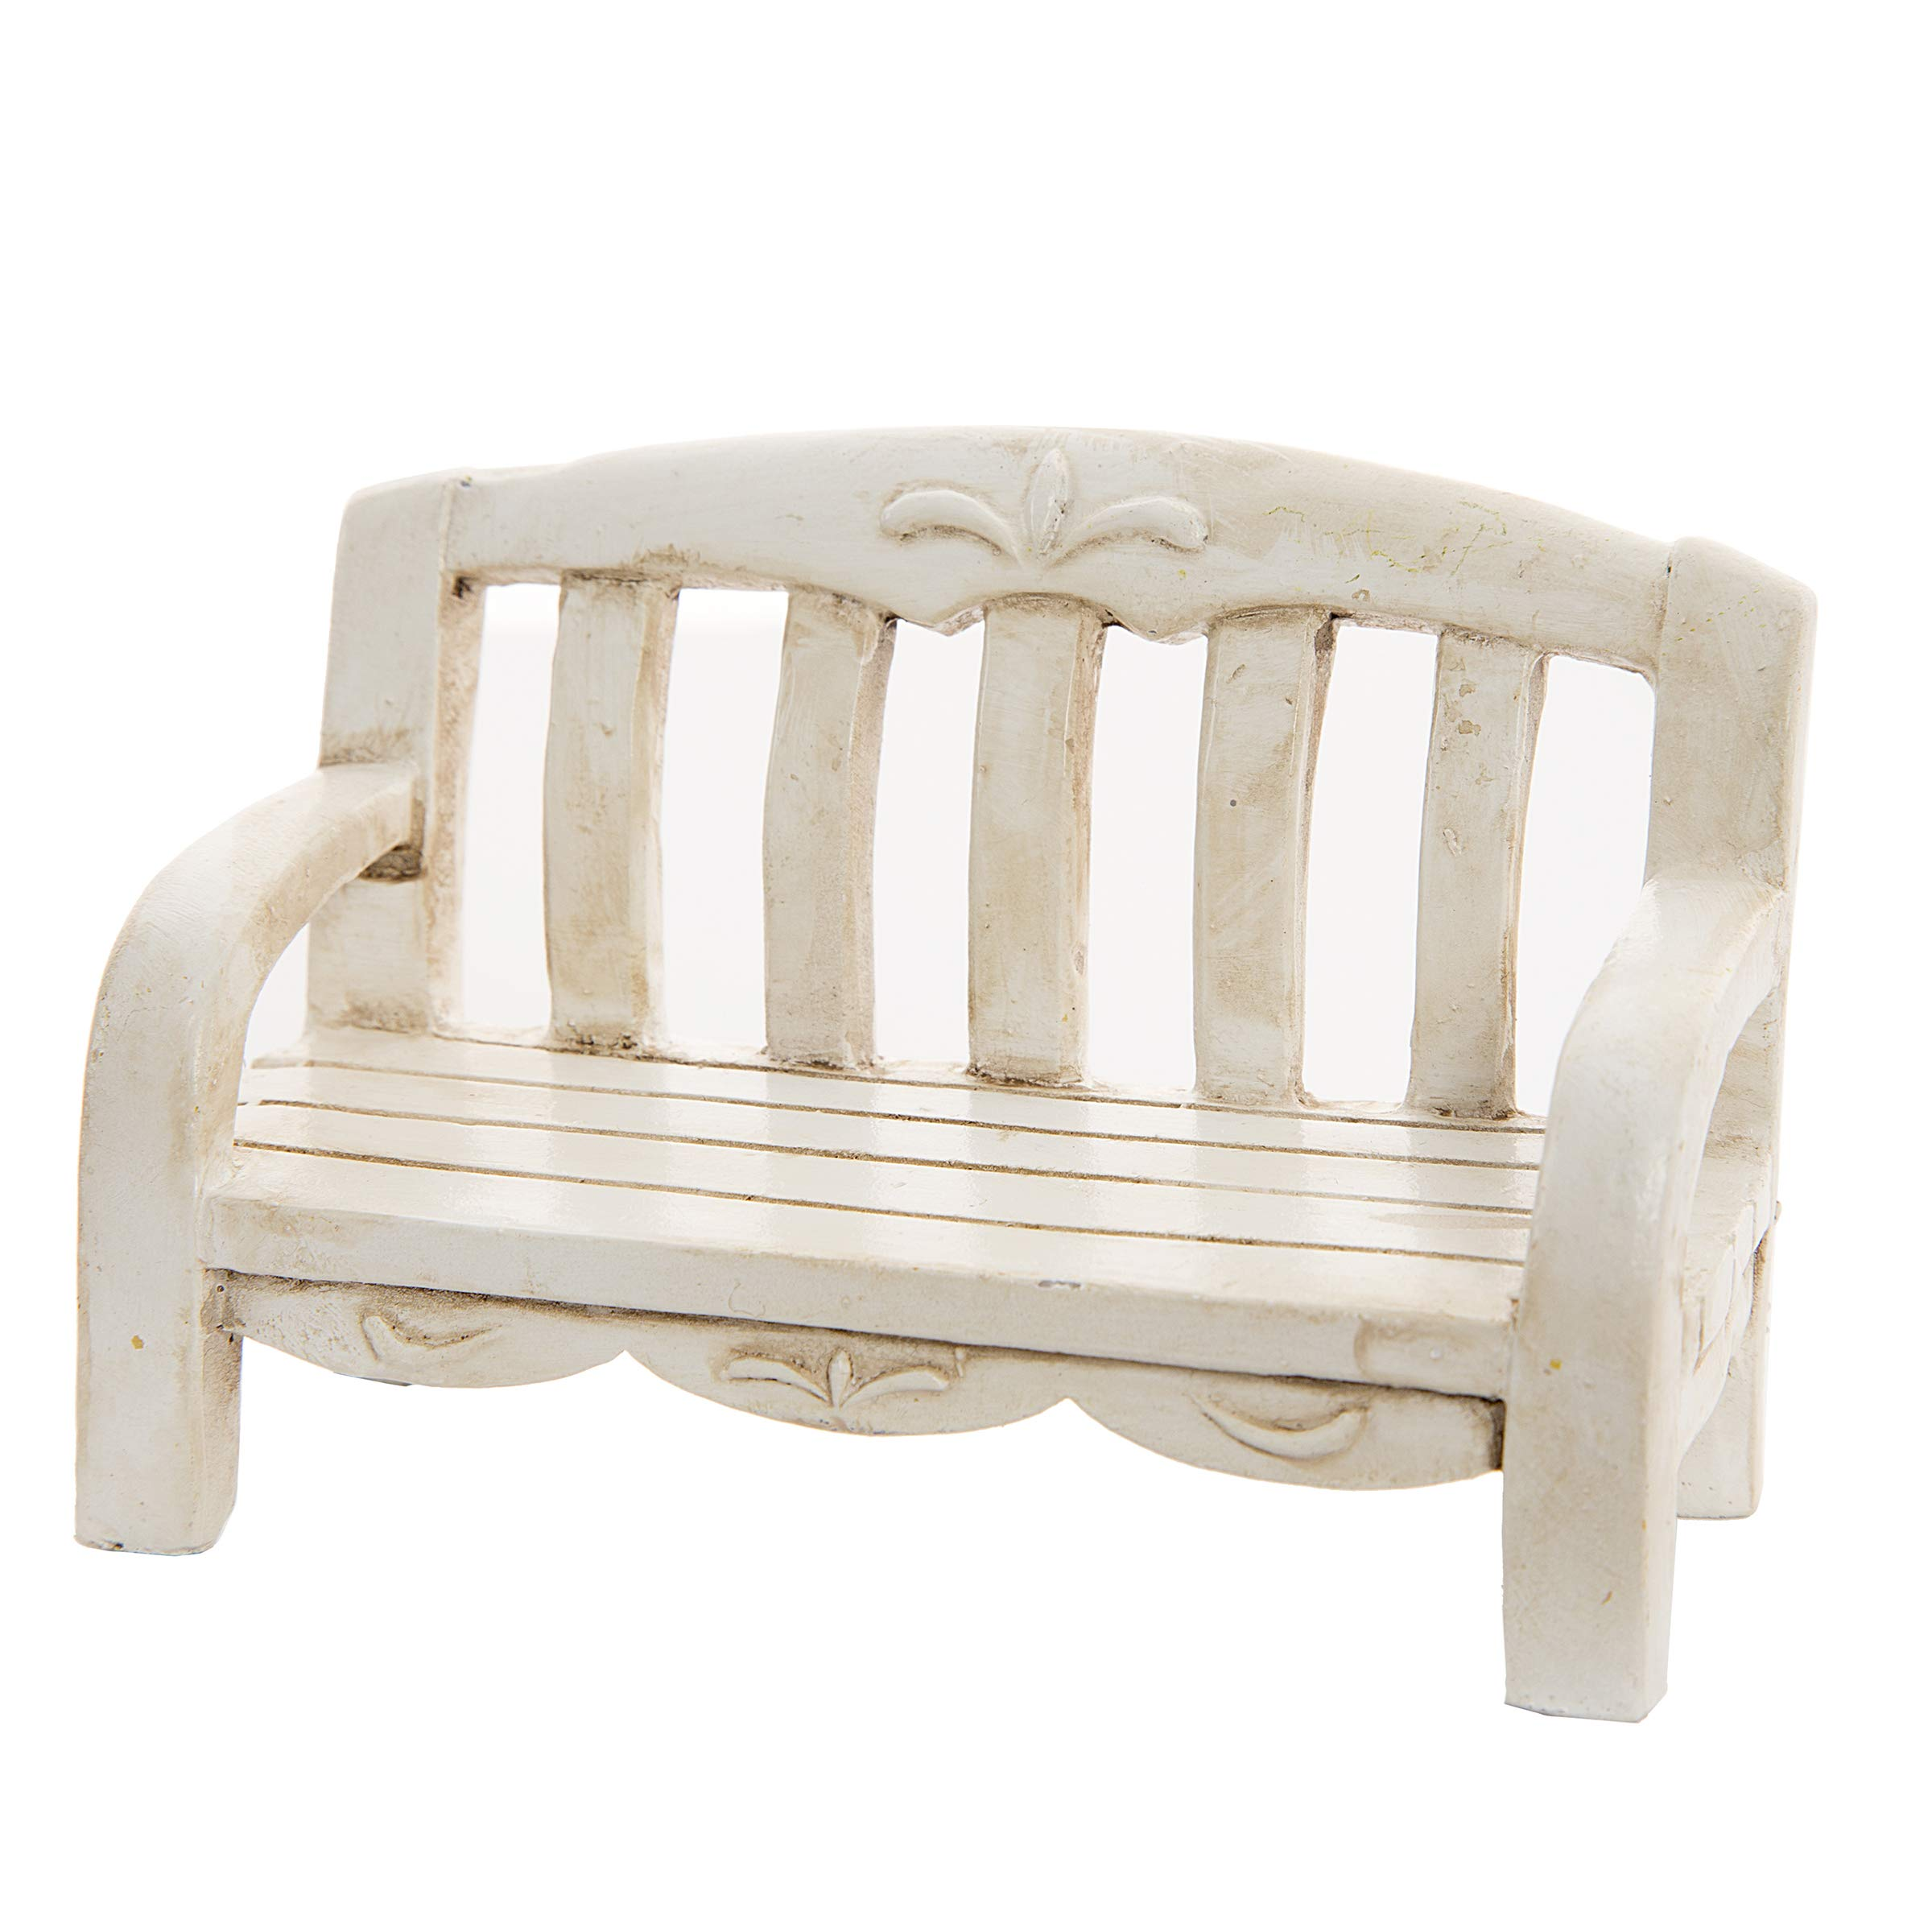 Ivory Fairy Garden Bench with Carvings (3 Pack)